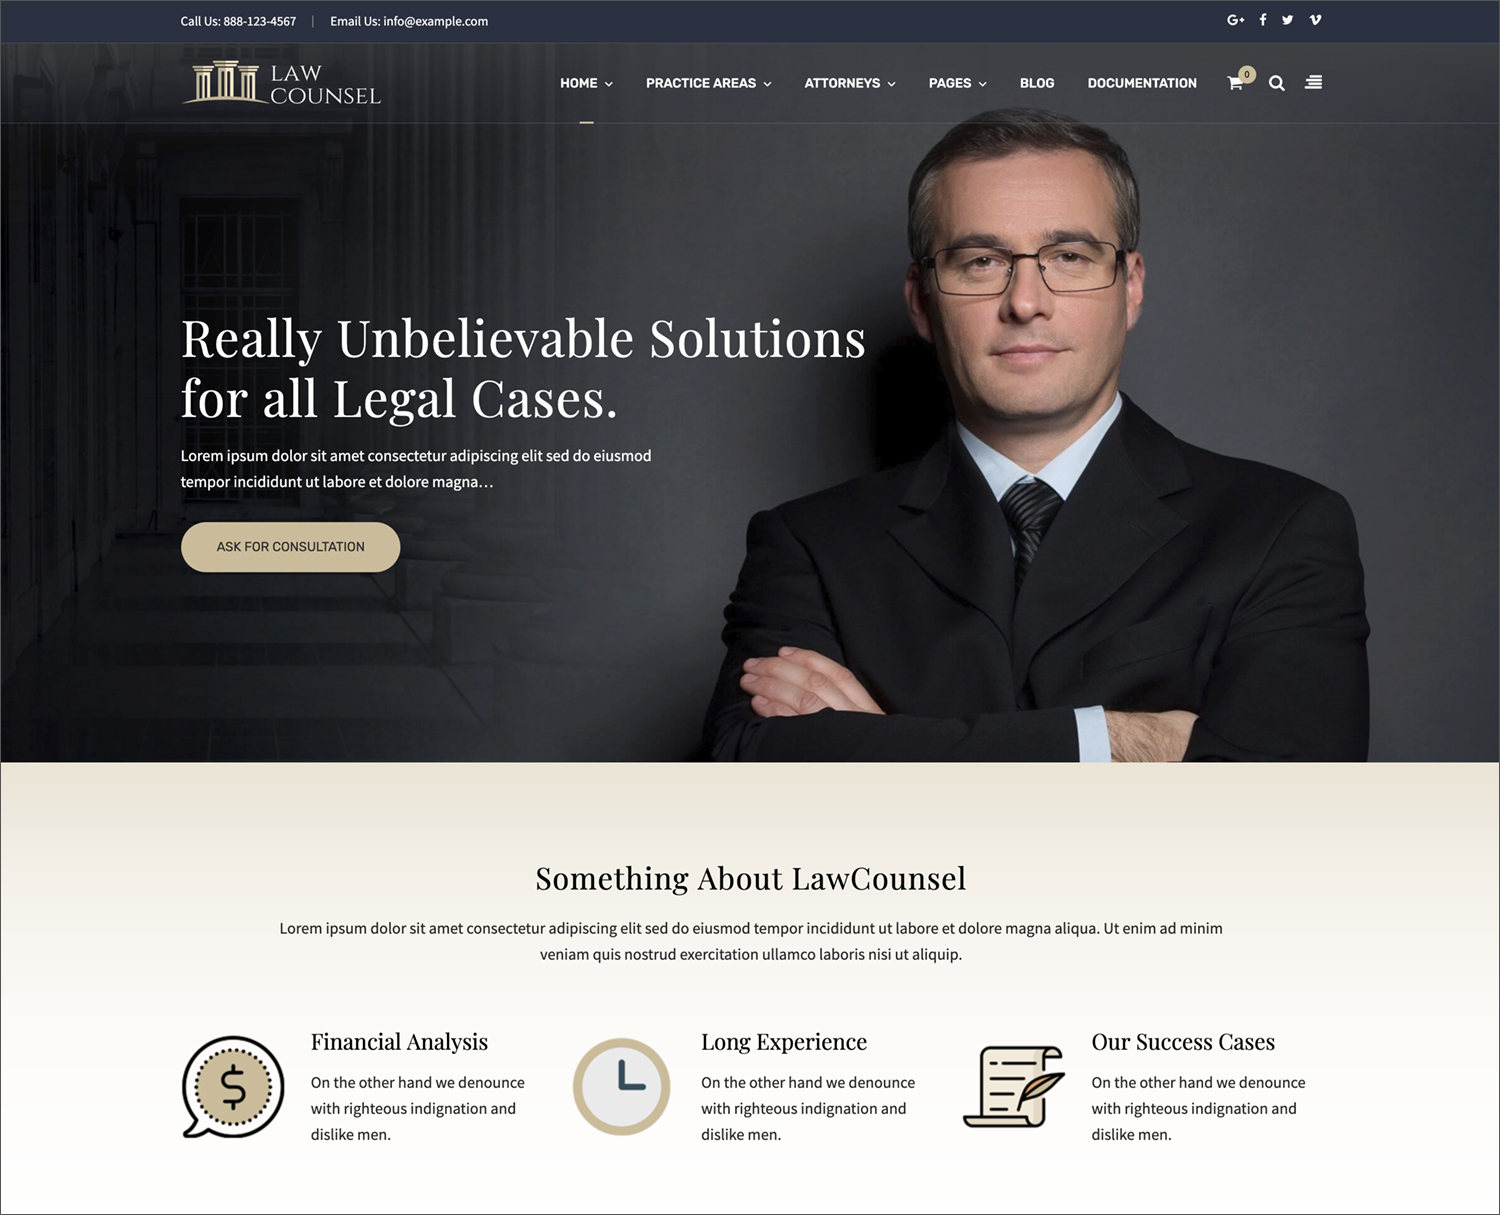 Law Counsel - Law Firms Attorneys & Legal Businesses